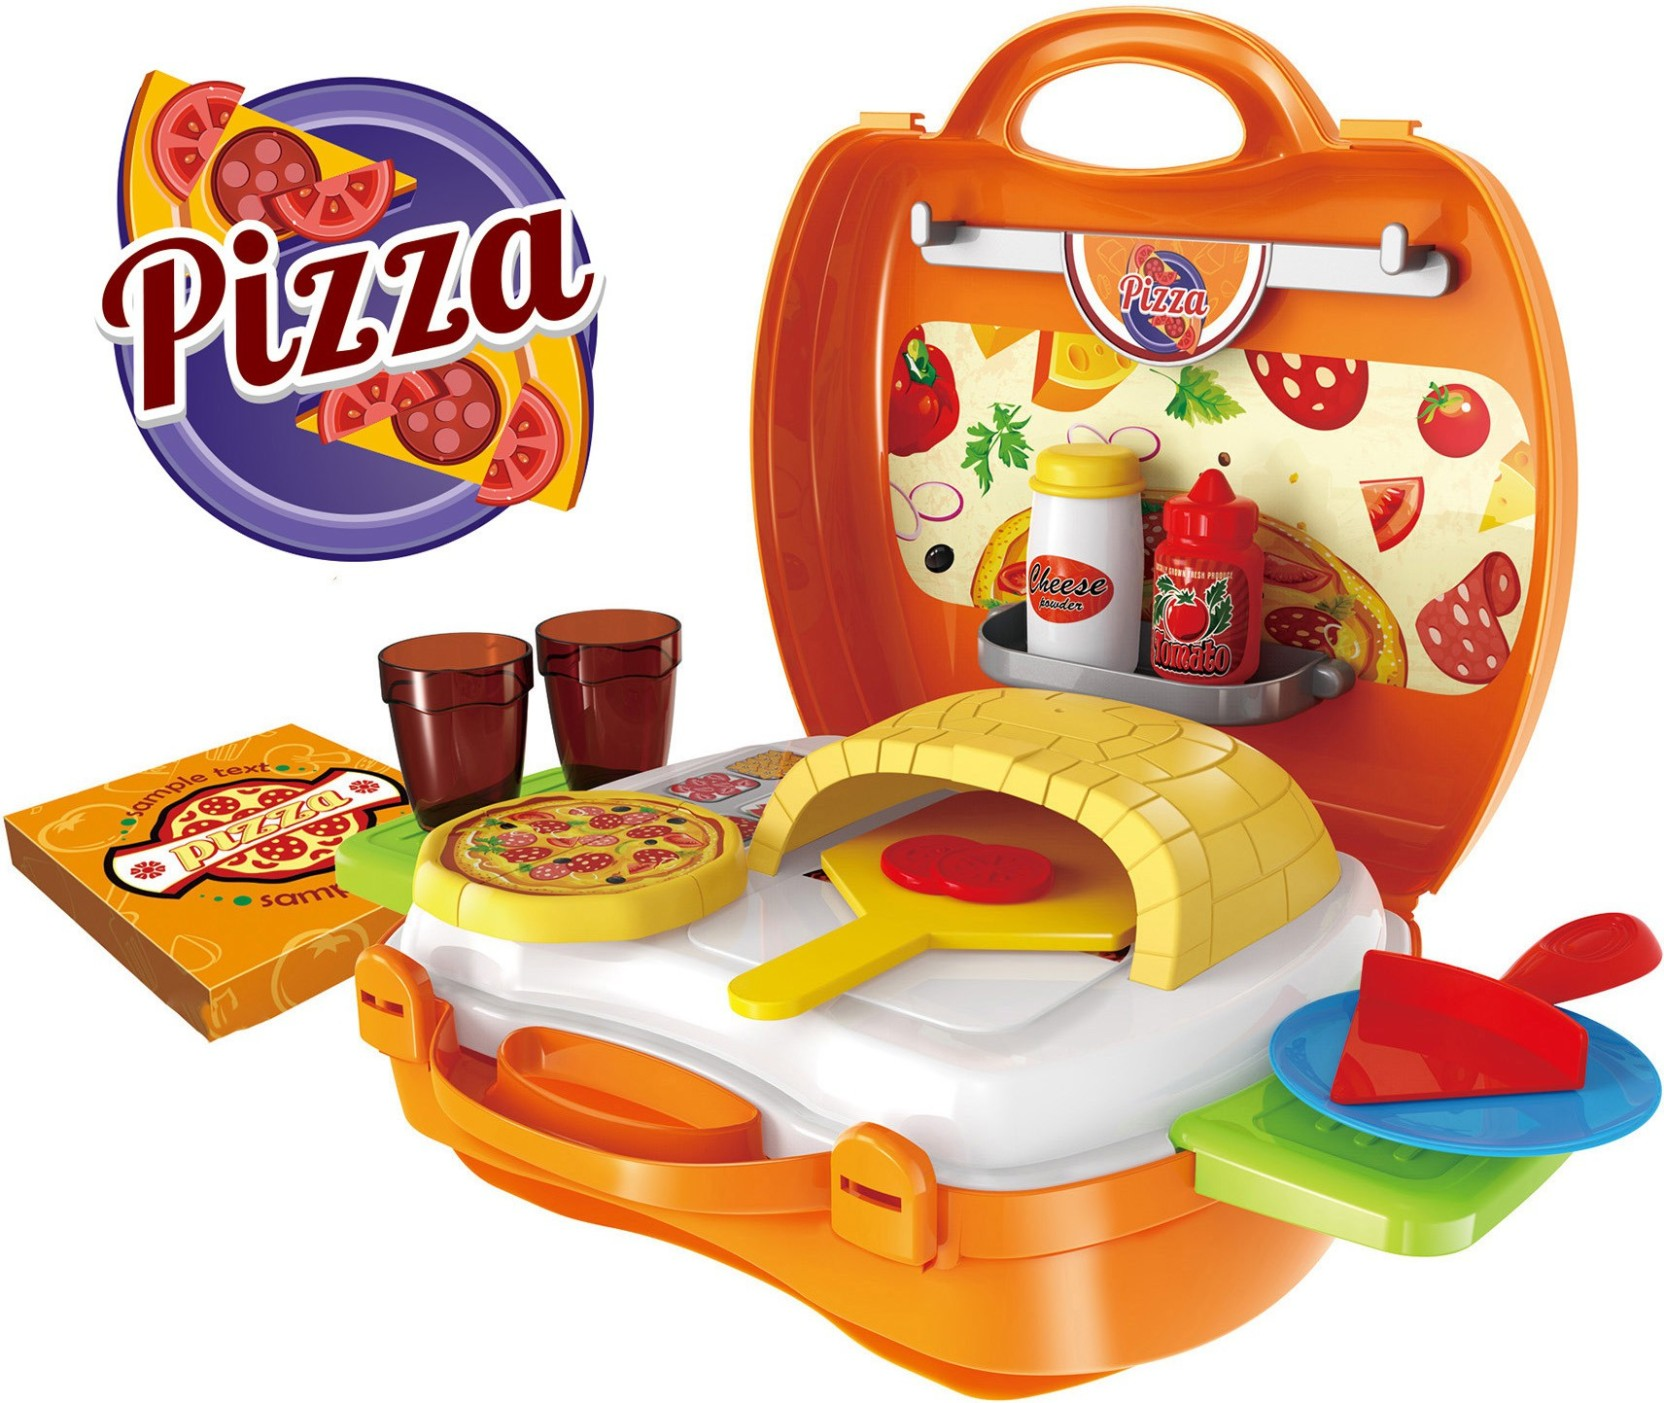 Saffire Pizza Suitcase Set Pizza Suitcase Set Buy Pizza Set